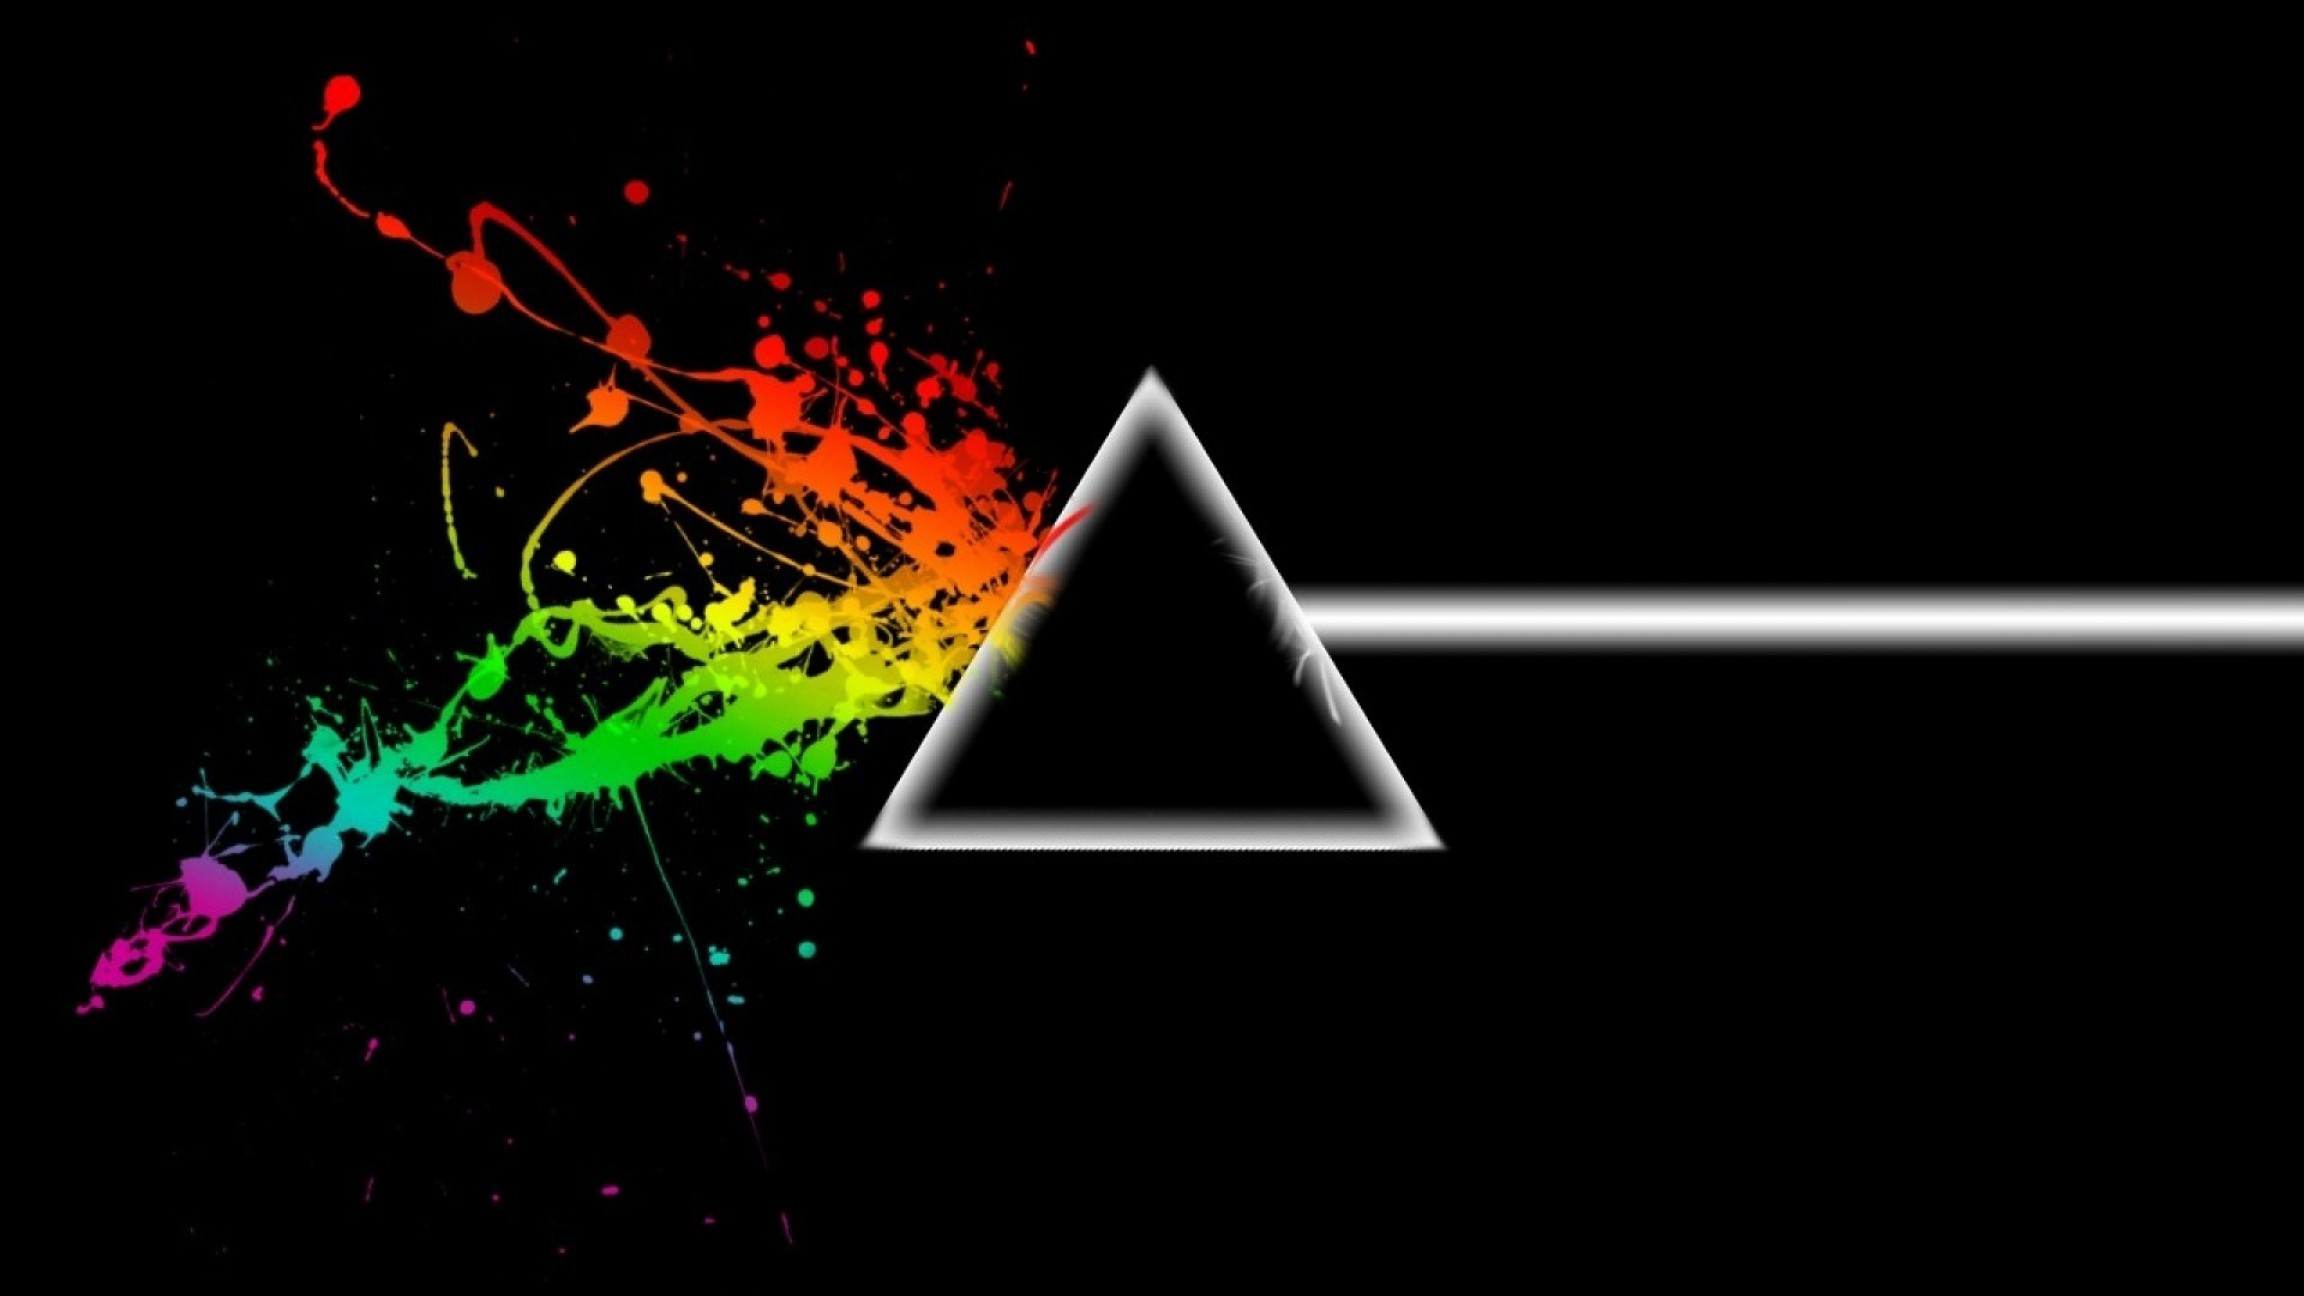 Pink Floyd Dark Side Of The Moon Wallpaper Posted By Michelle Peltier